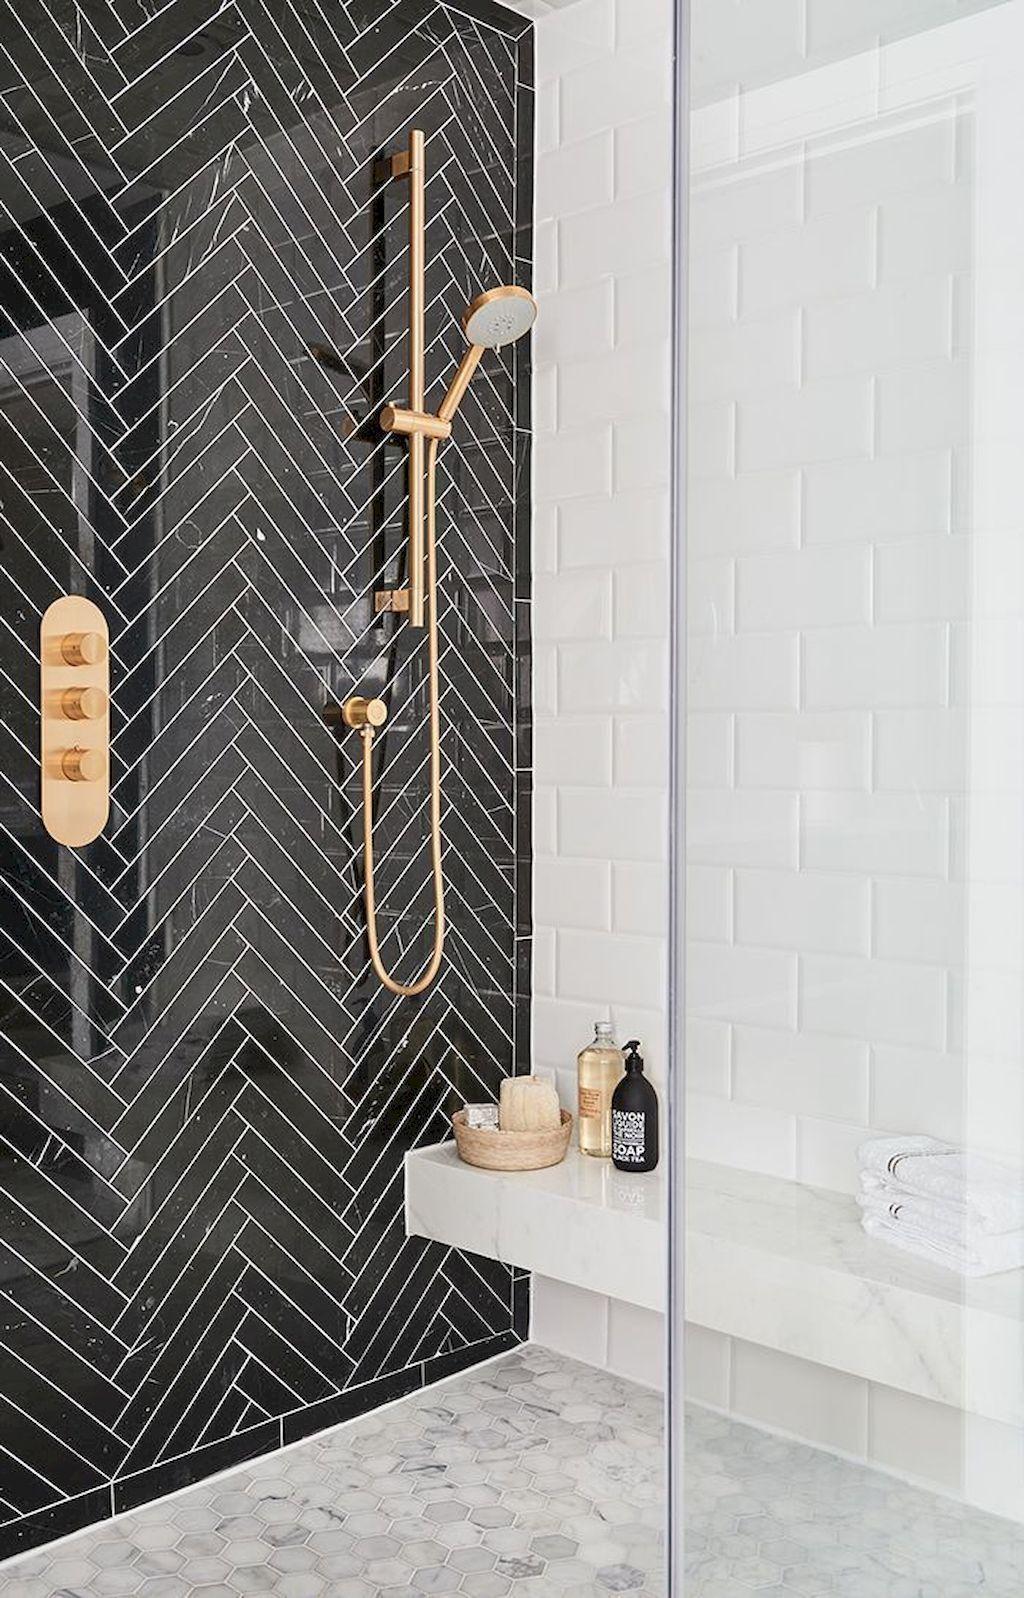 25 Tranquil Scandinavian Bathroom Decor To Get Rid Of Daily Stress - N7